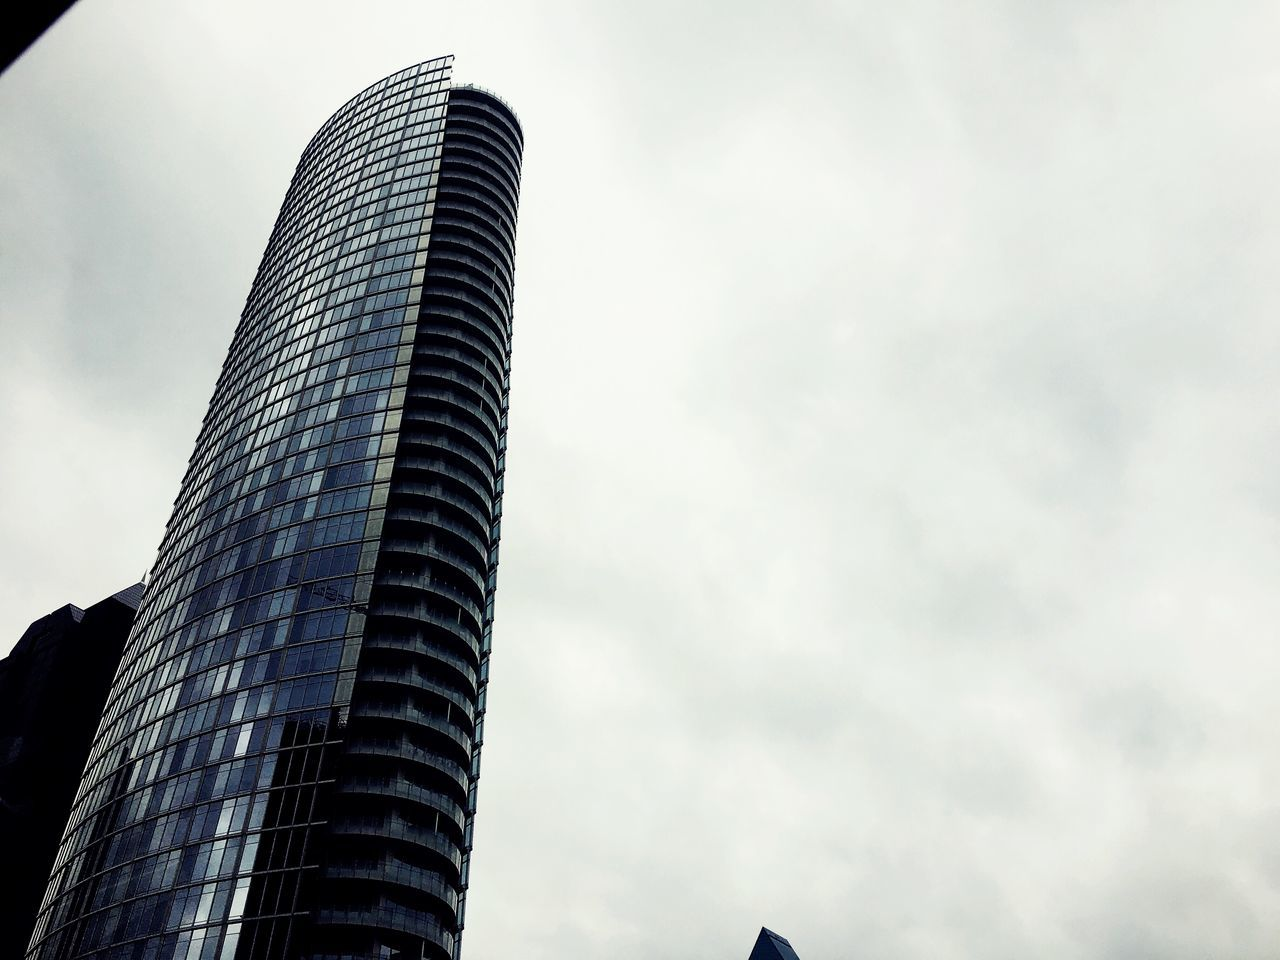 architecture, modern, building exterior, skyscraper, built structure, low angle view, sky, tower, city, outdoors, day, no people, cloud - sky, travel destinations, corporate business, tall, office park